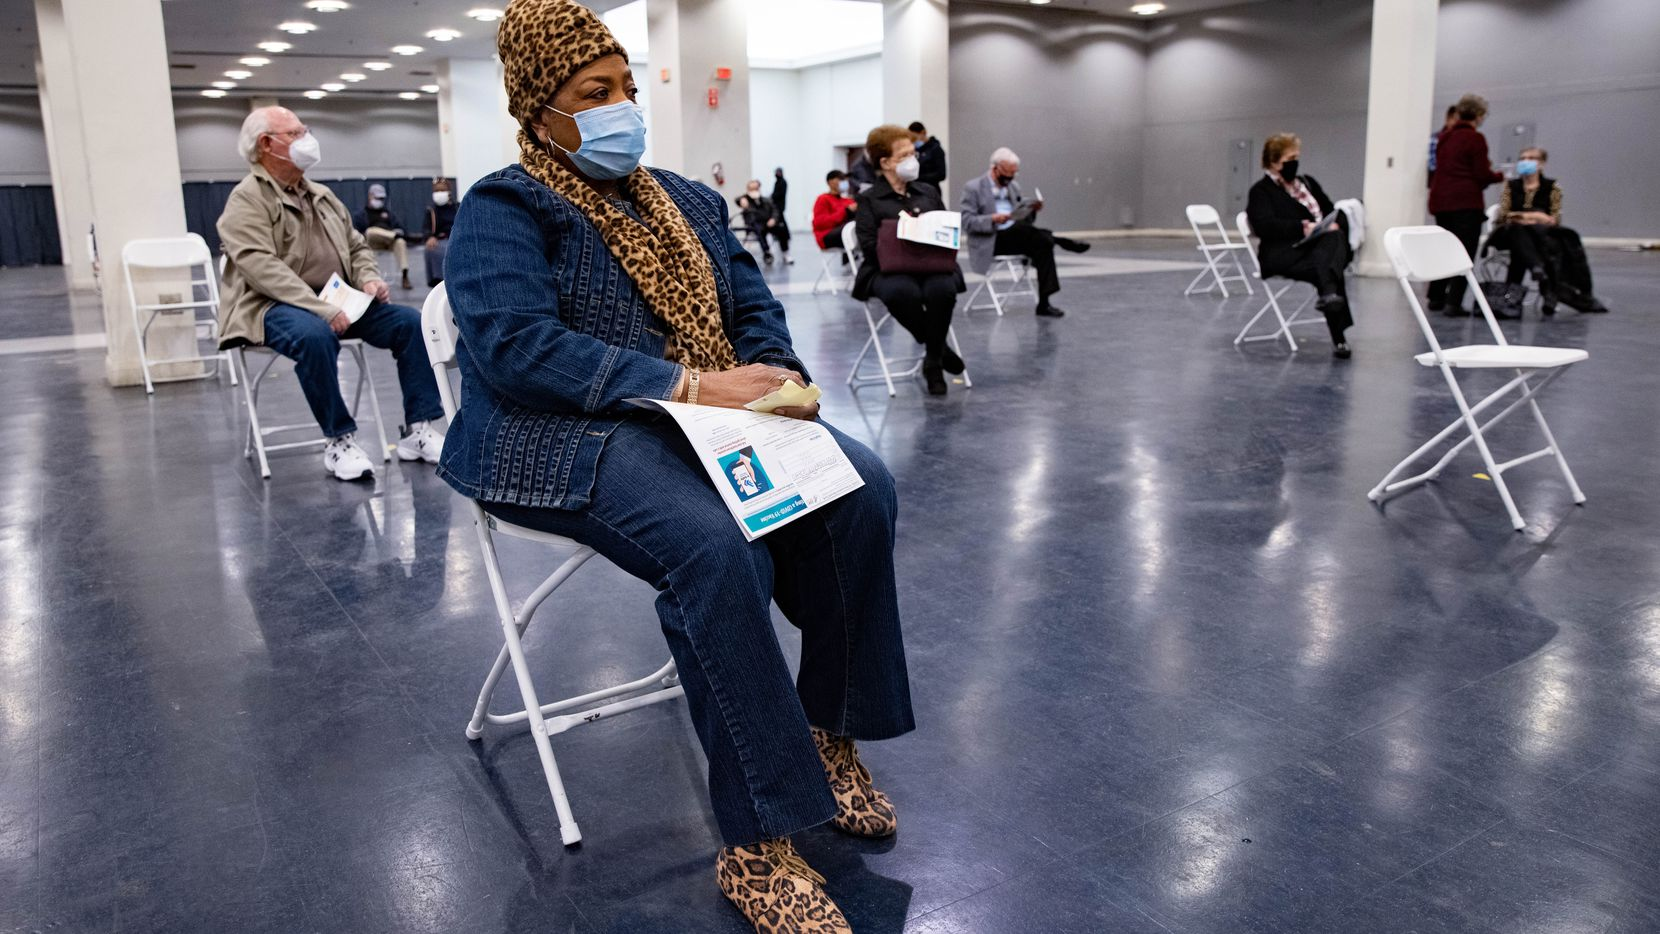 Gladys Rodgers, 77, waits after receiving the COVID-19 vaccine in the post vaccination waiting area at Fair Park in Dallas on Thursday, Jan. 14, 2021. A limited number of COVID-19 vaccine shots will be available Thursday at Fair Park for North Texans 75 and older.